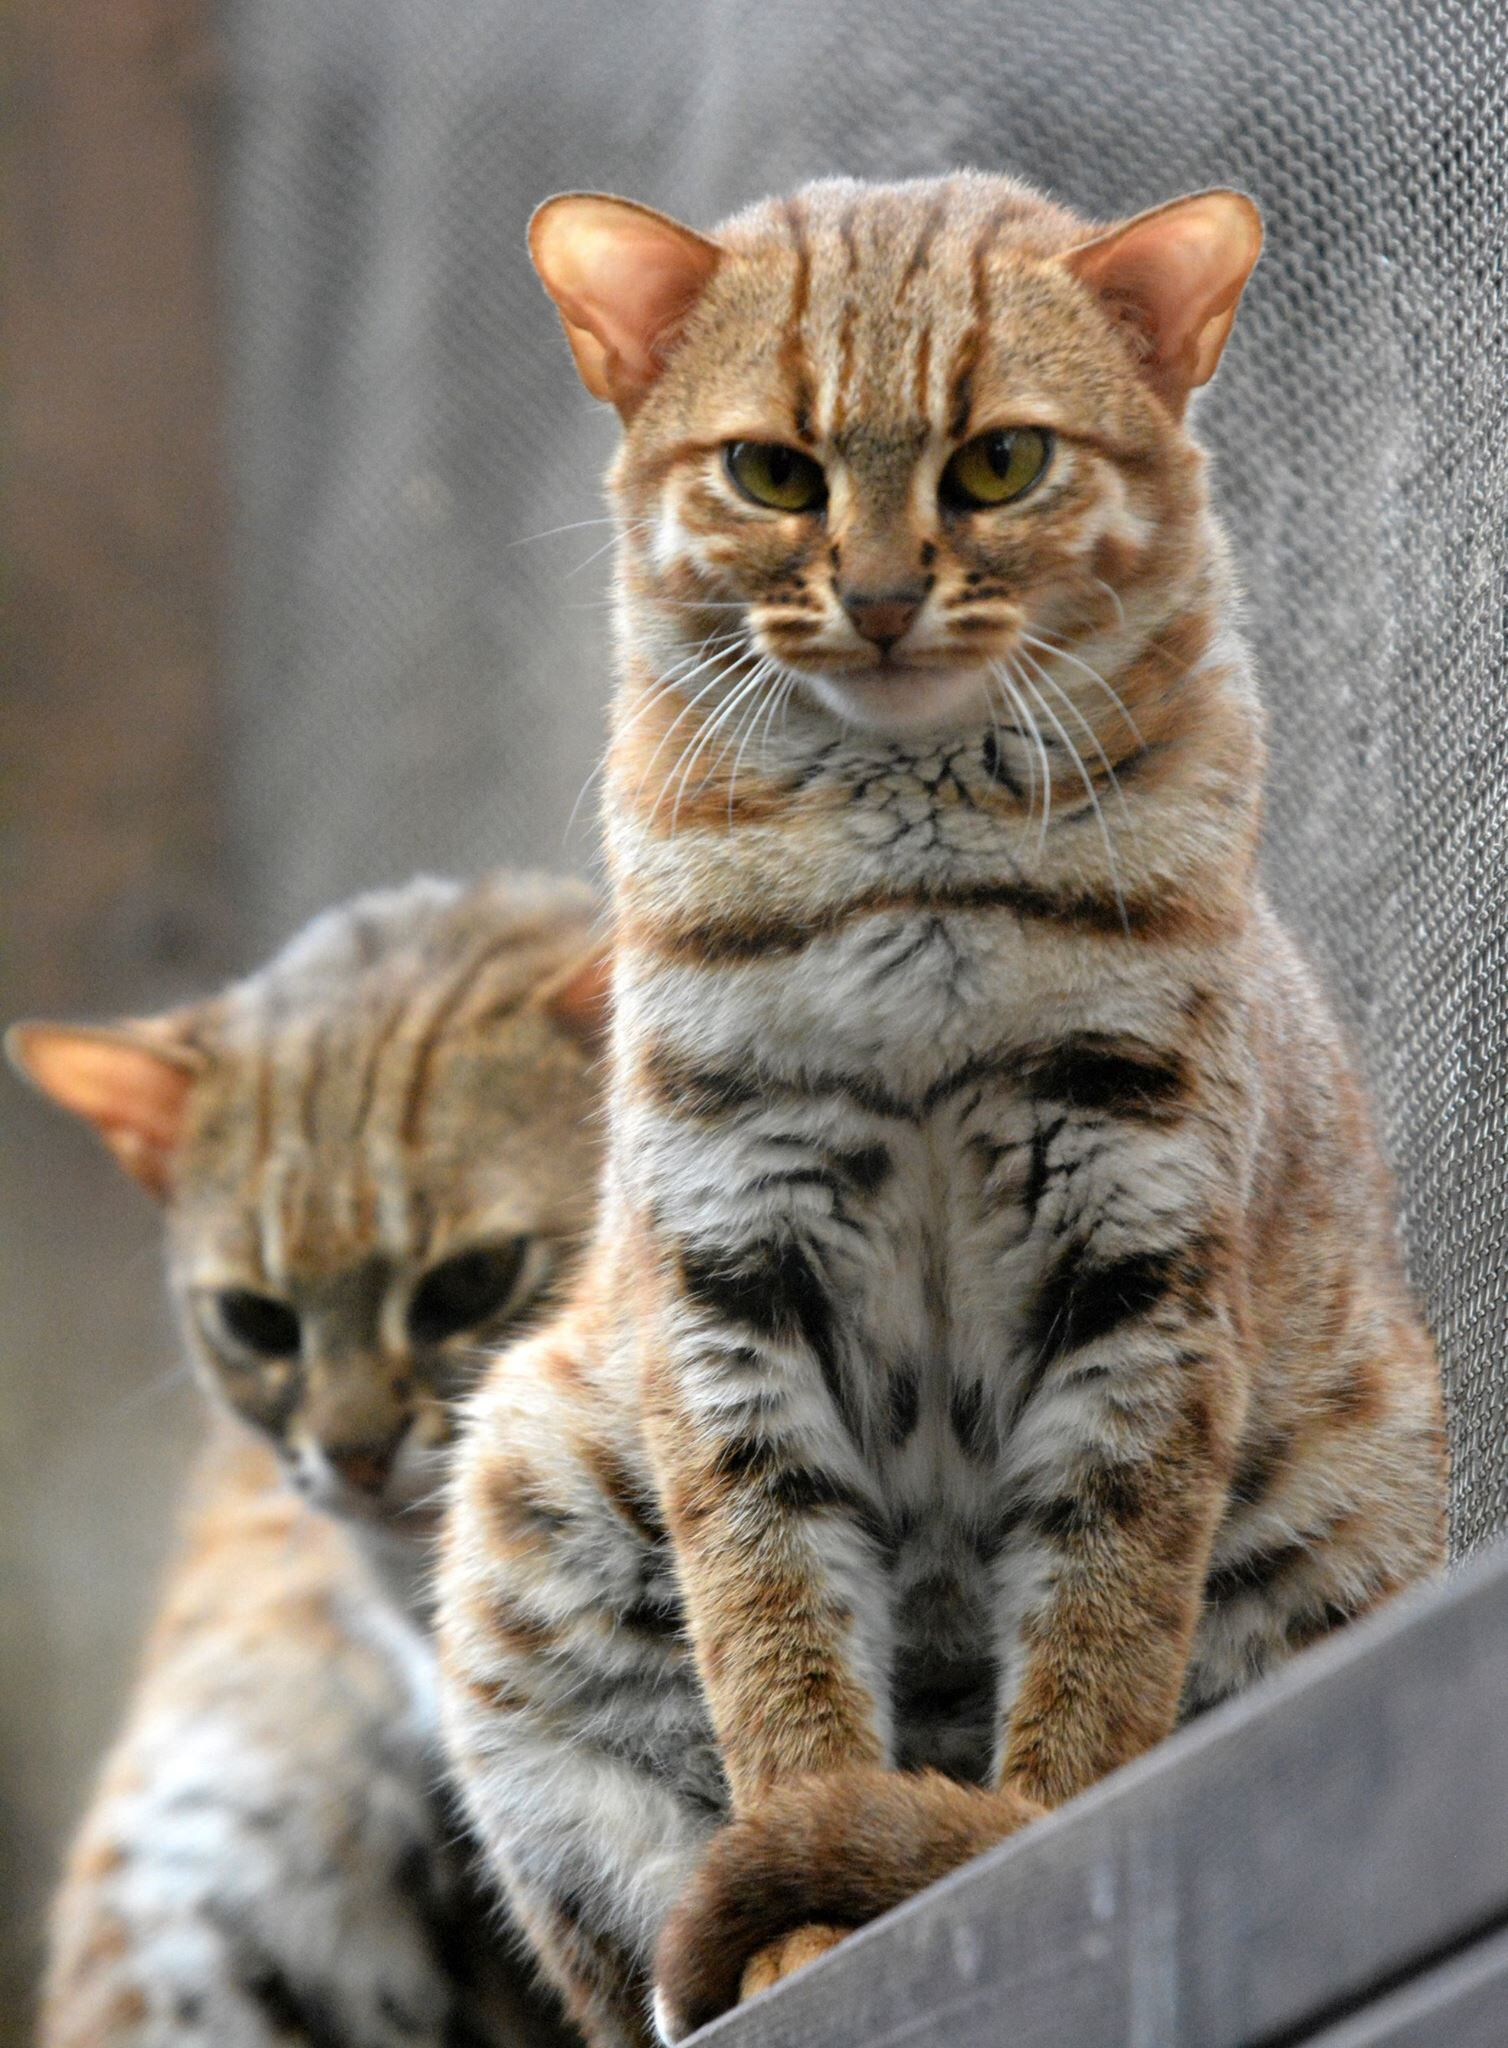 The Rustyspotted Cat (Prionailurus rubiginosus) is the